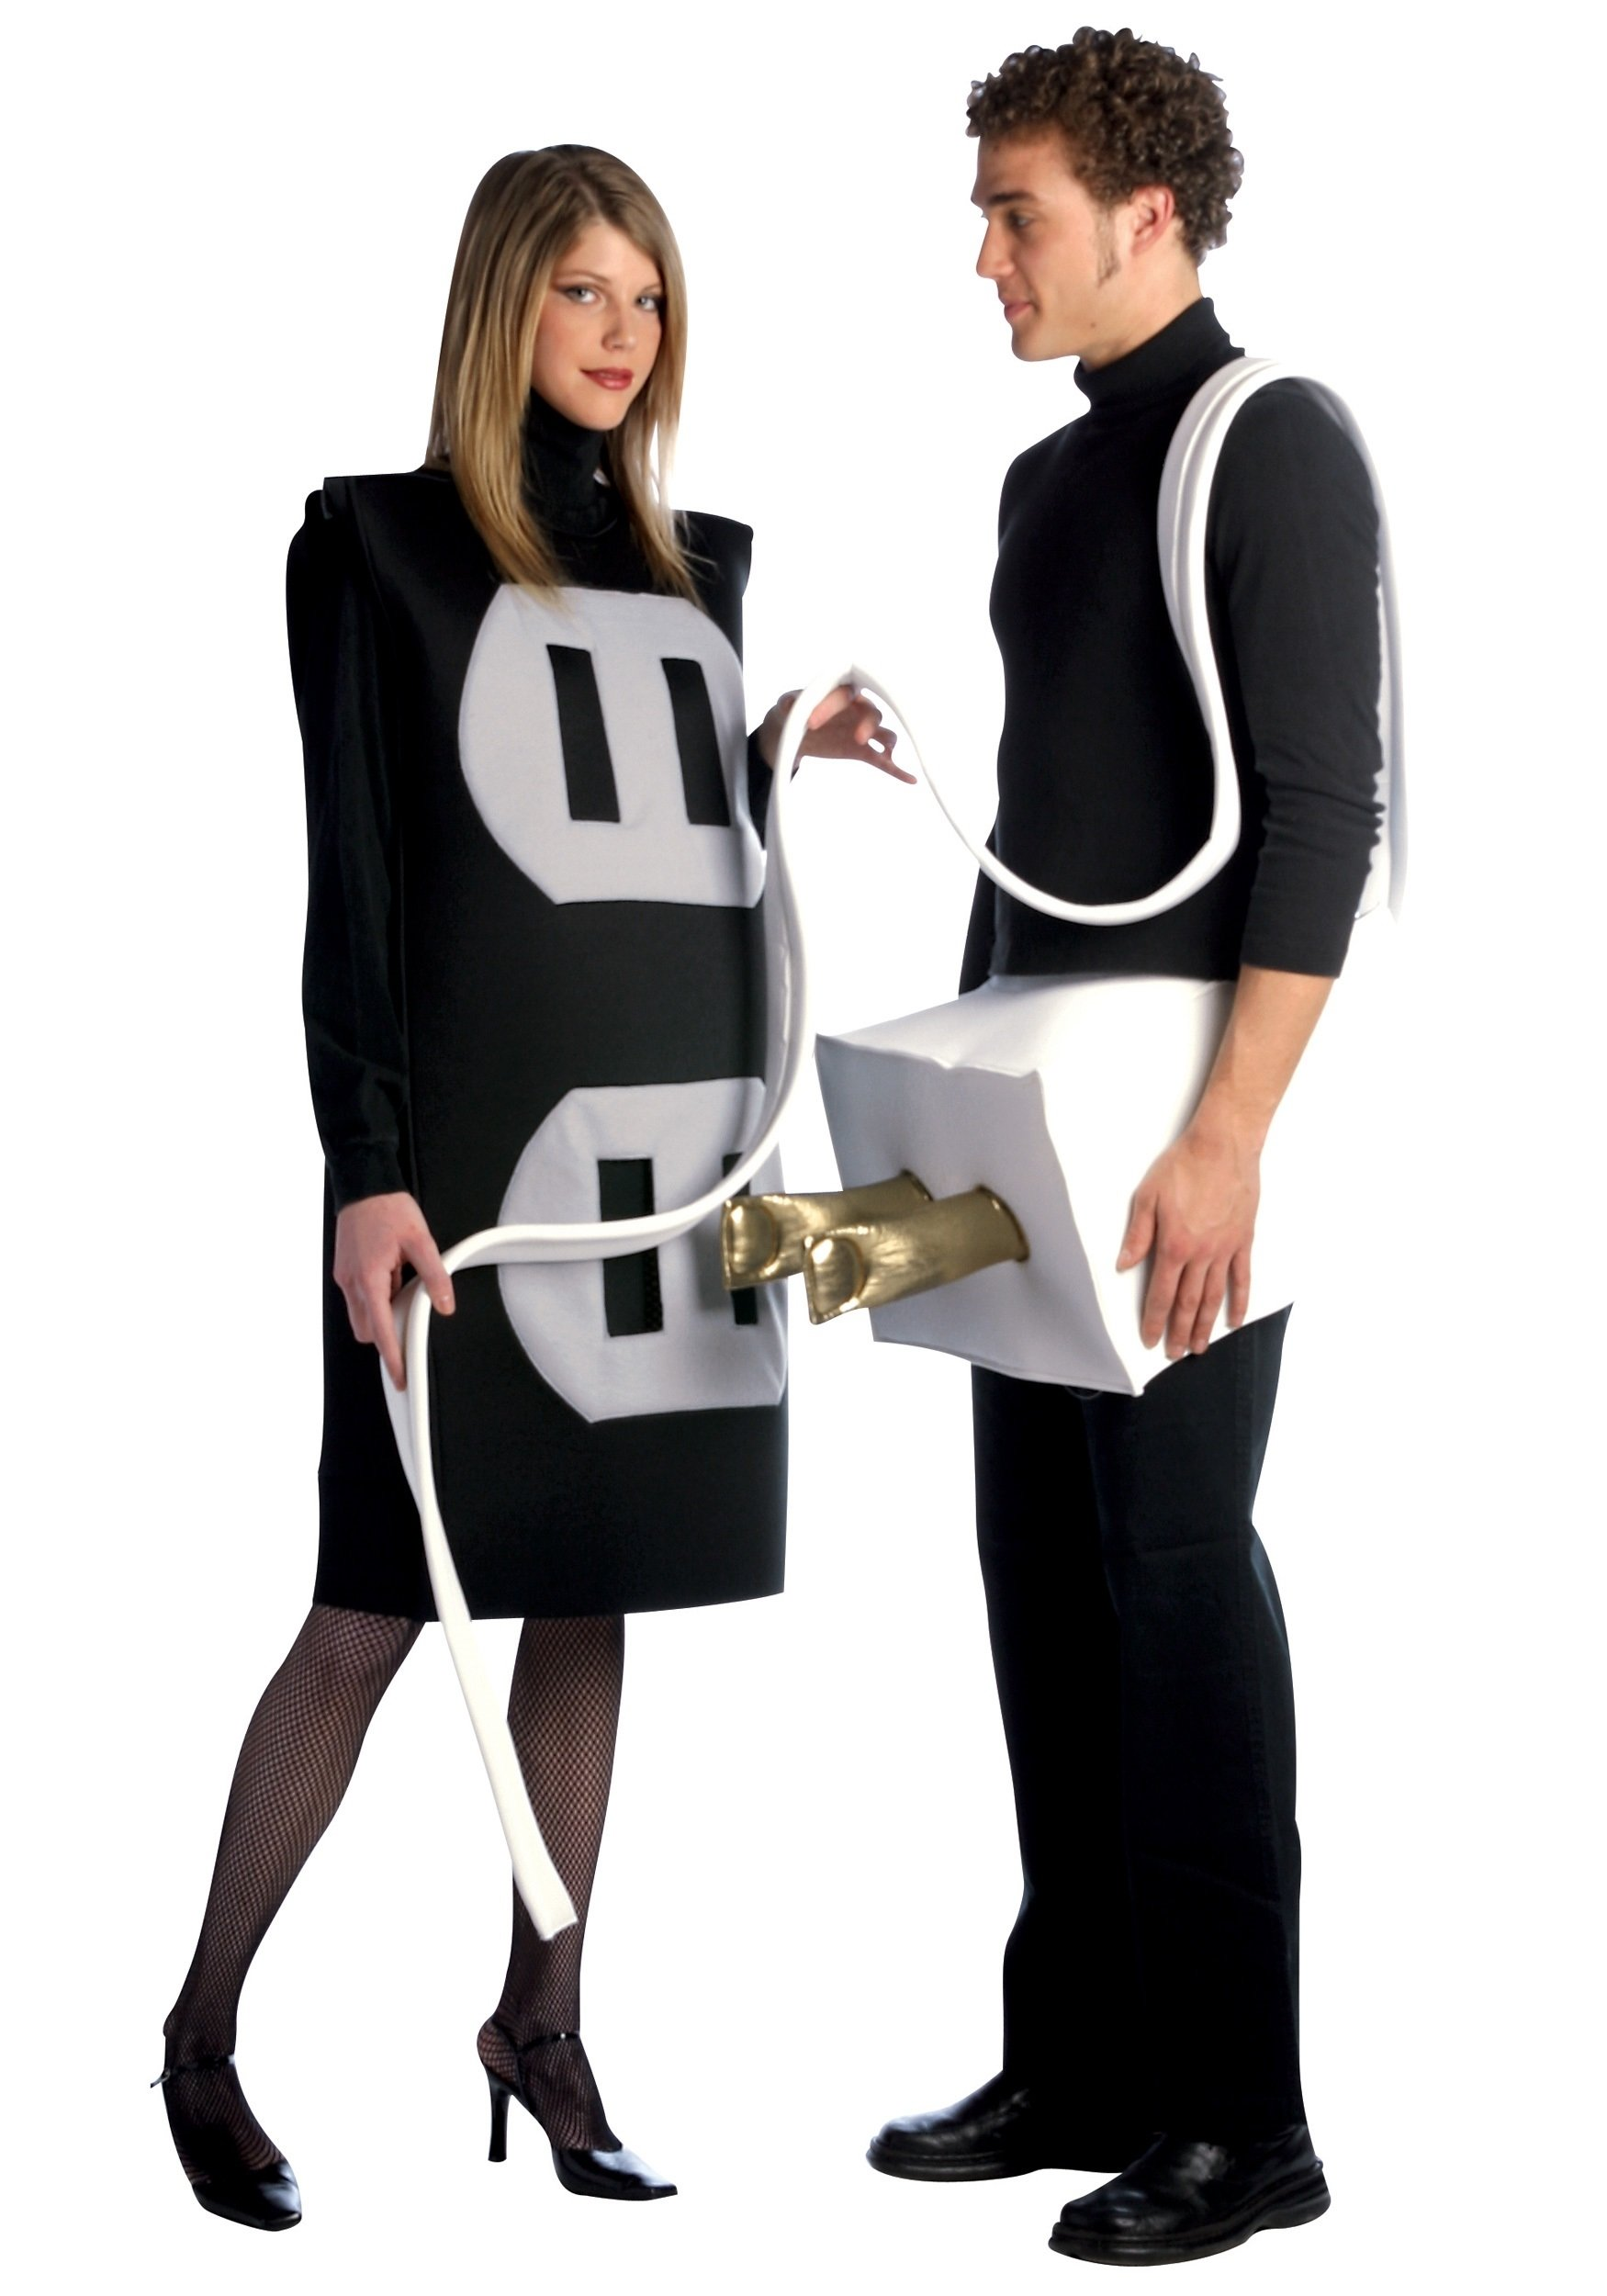 10 Stunning Halloween Costume Ideas For Adults plug and socket costume funny couples costume ideas 9